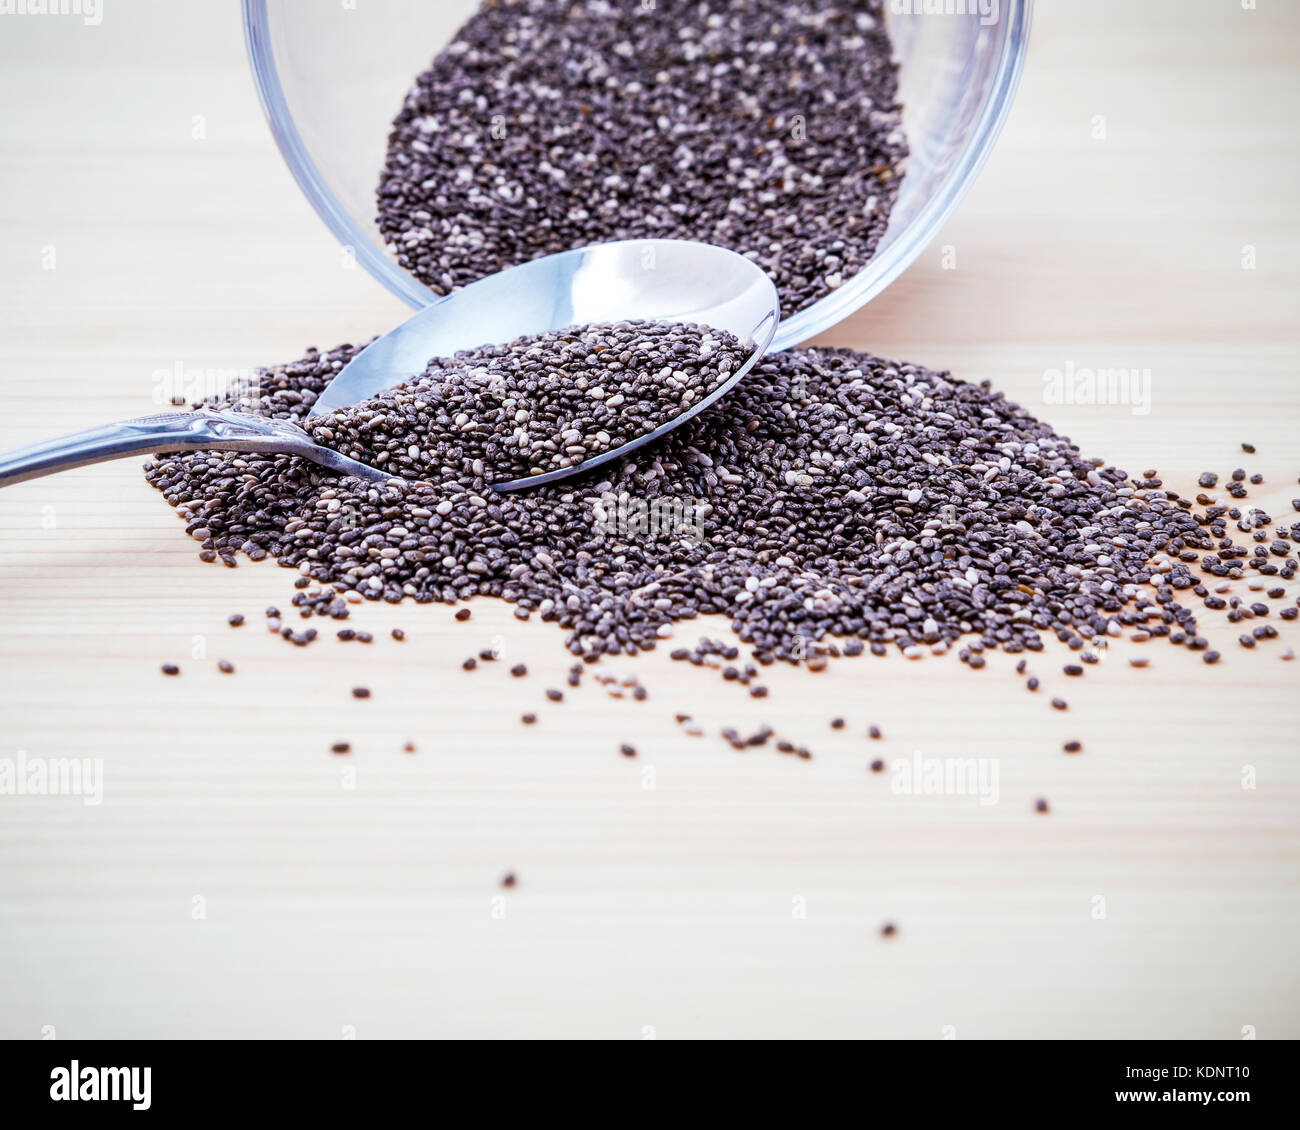 Nutritious chia seeds in glass bowl on wooden table for diet foods ingredients . Nutritious Foods and Super foods - Stock Image